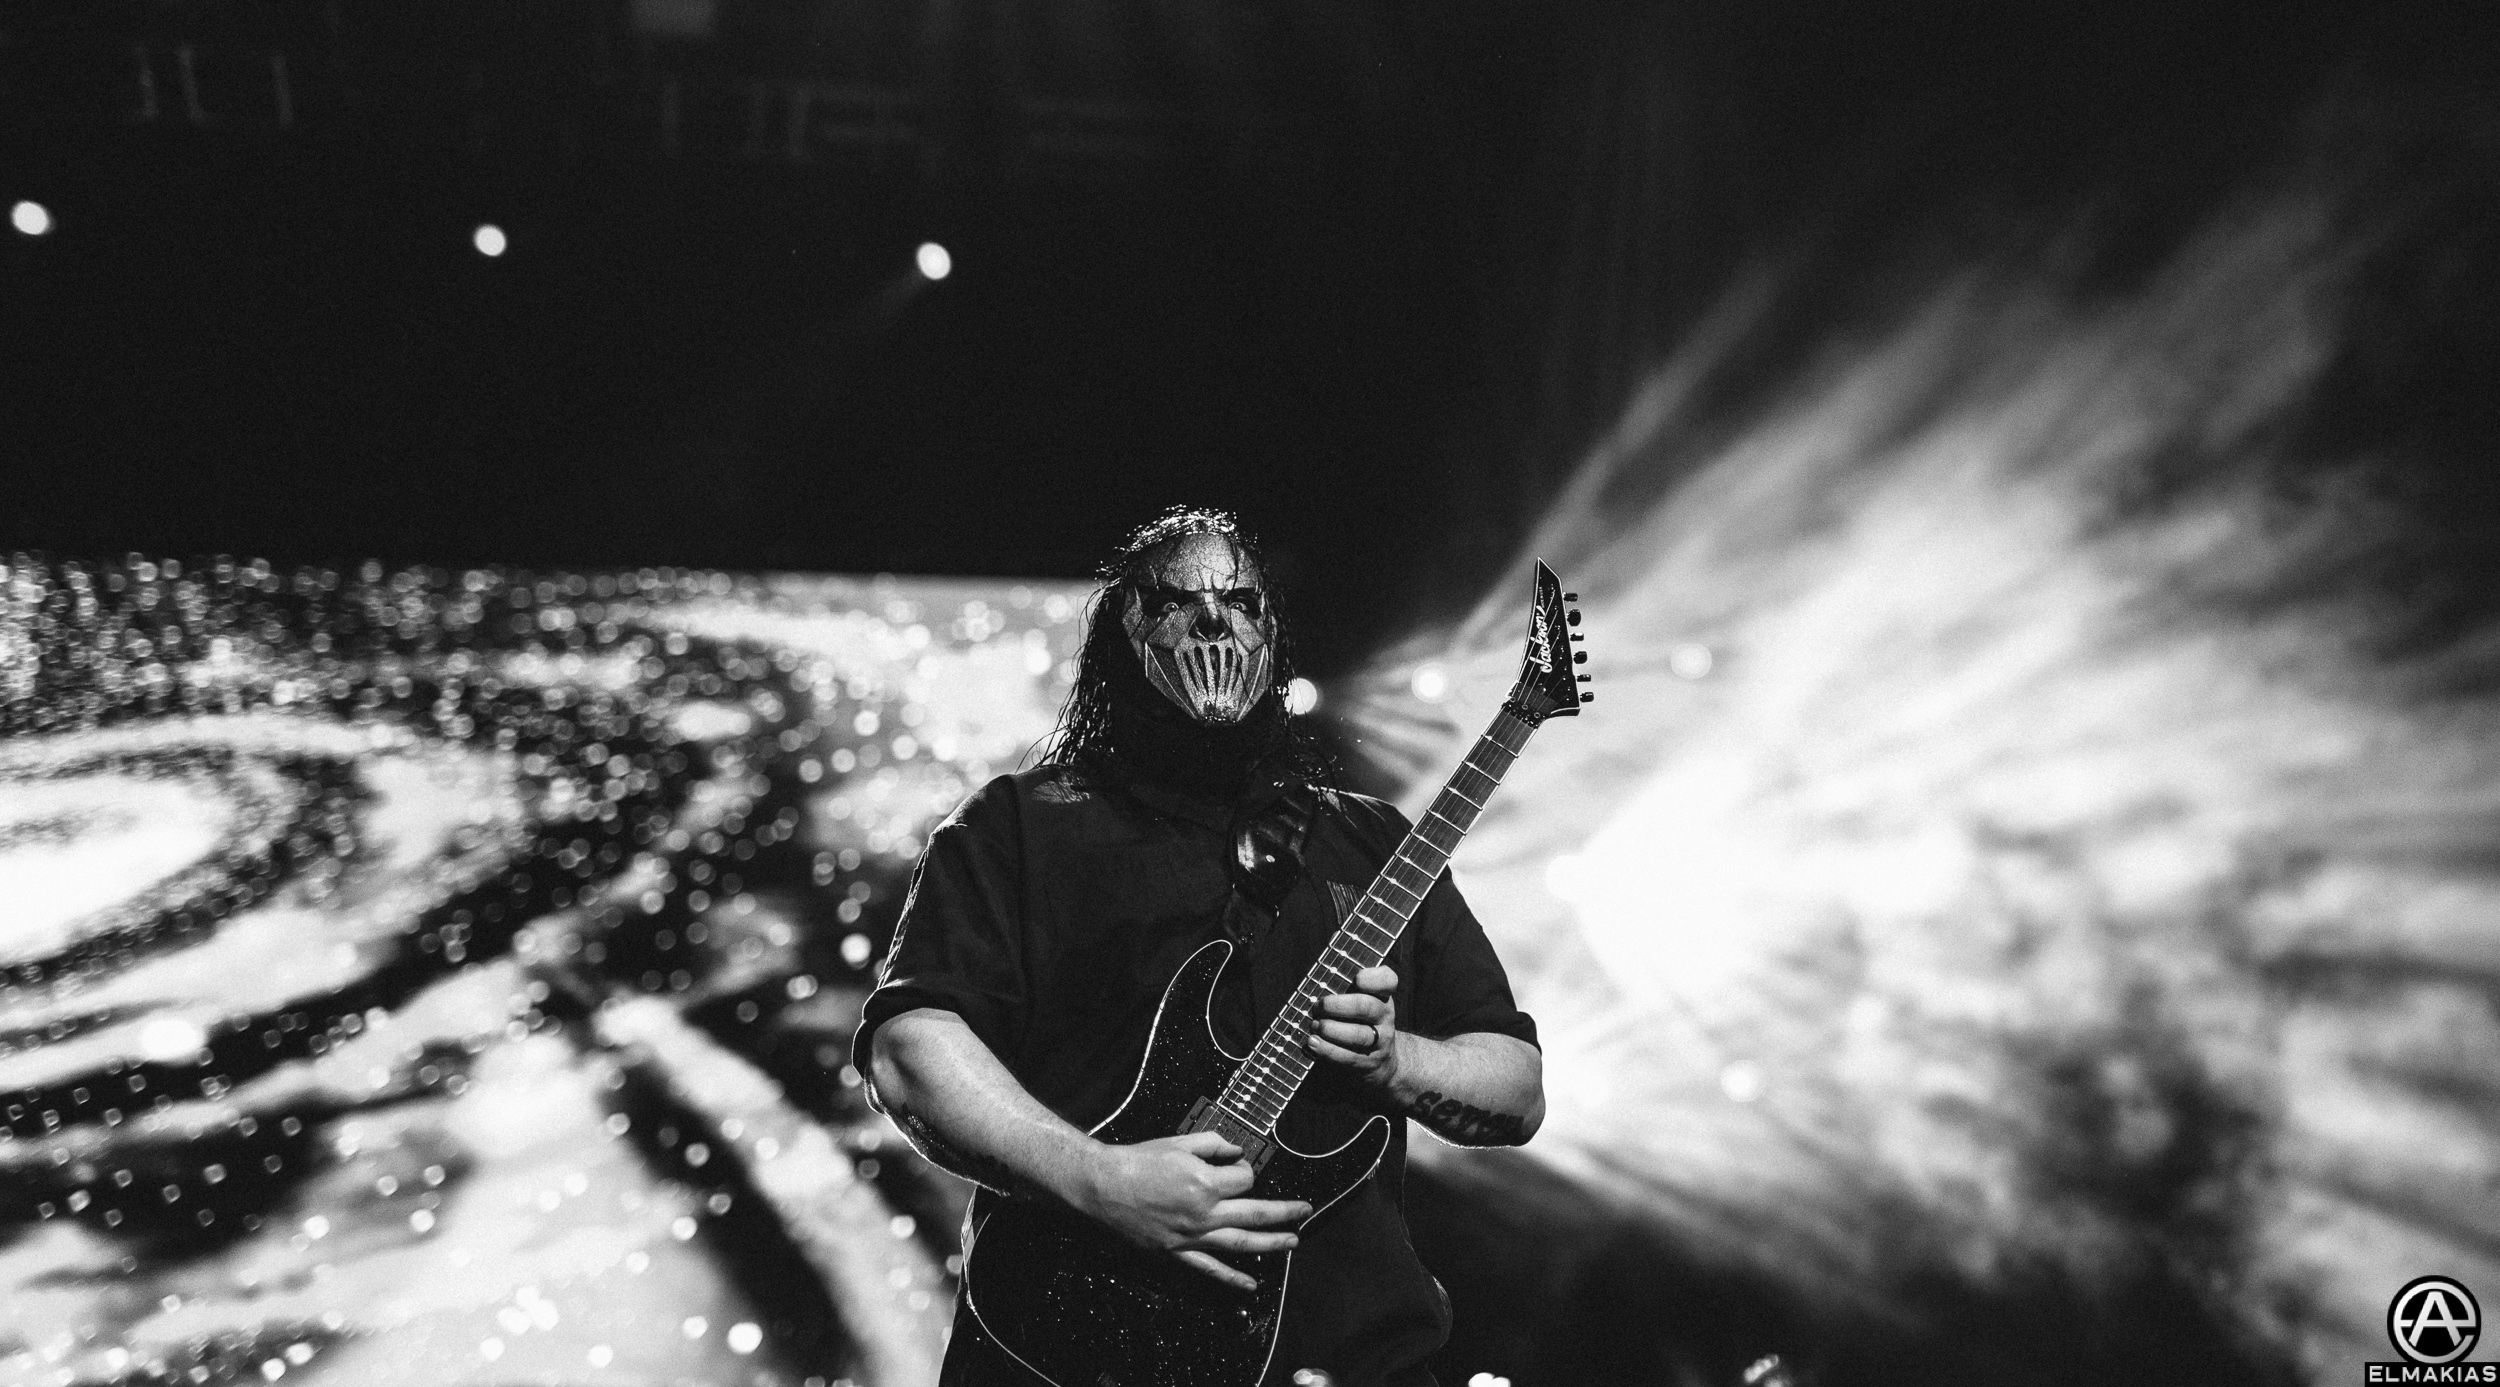 Mick Thomson of Slipknot photographed with the Sigma 50mm ART f/1.4